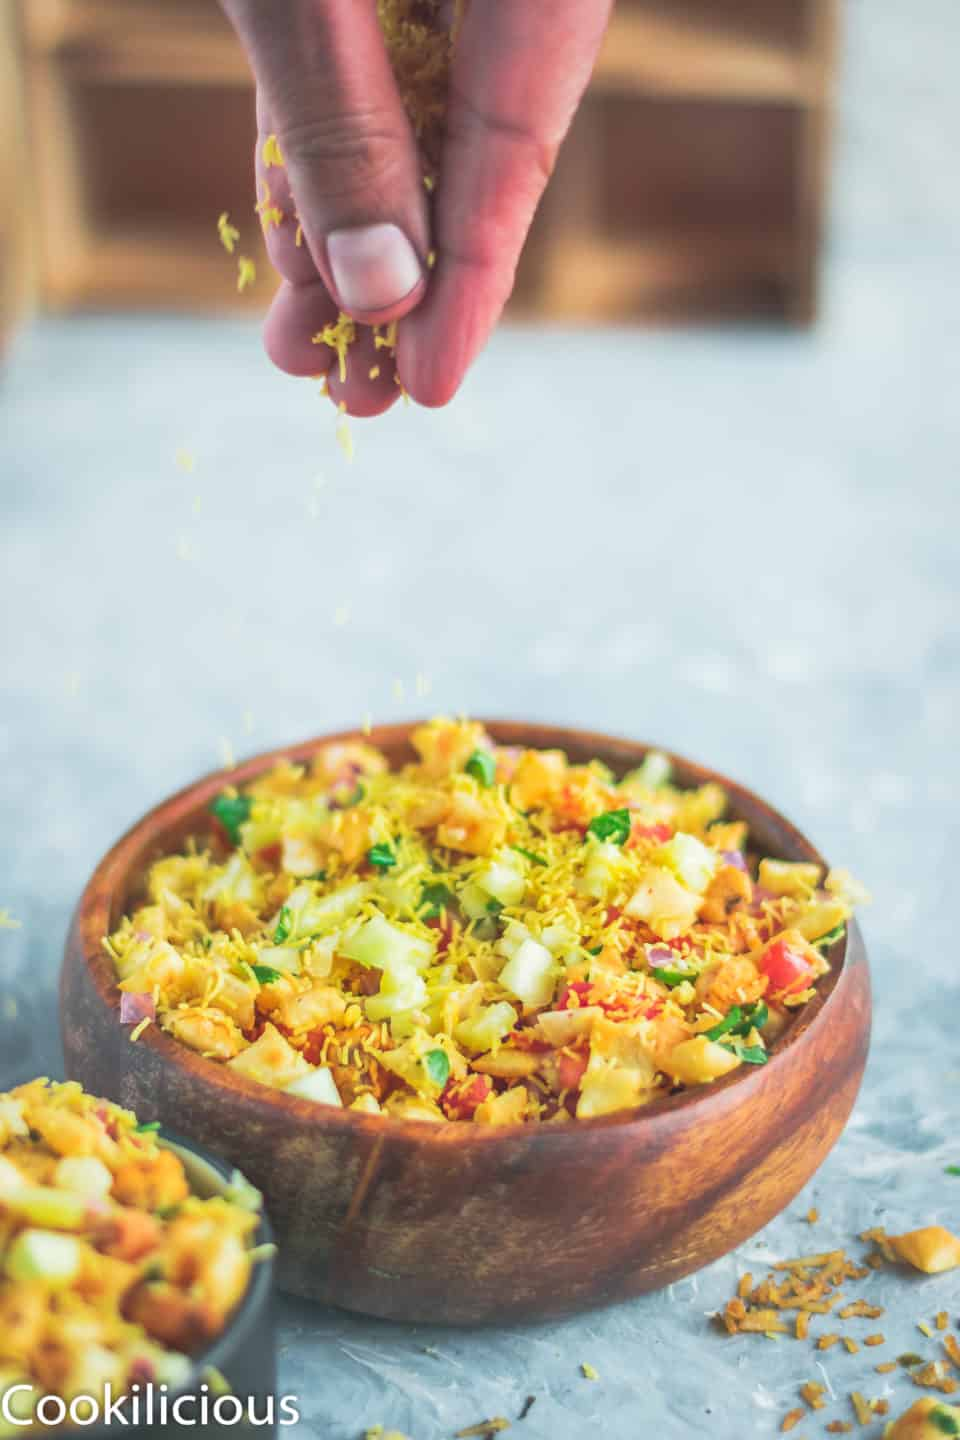 a hand sprinkling sev over 2 bowls containing Crispy & Masaledar Cheeselings Bhel